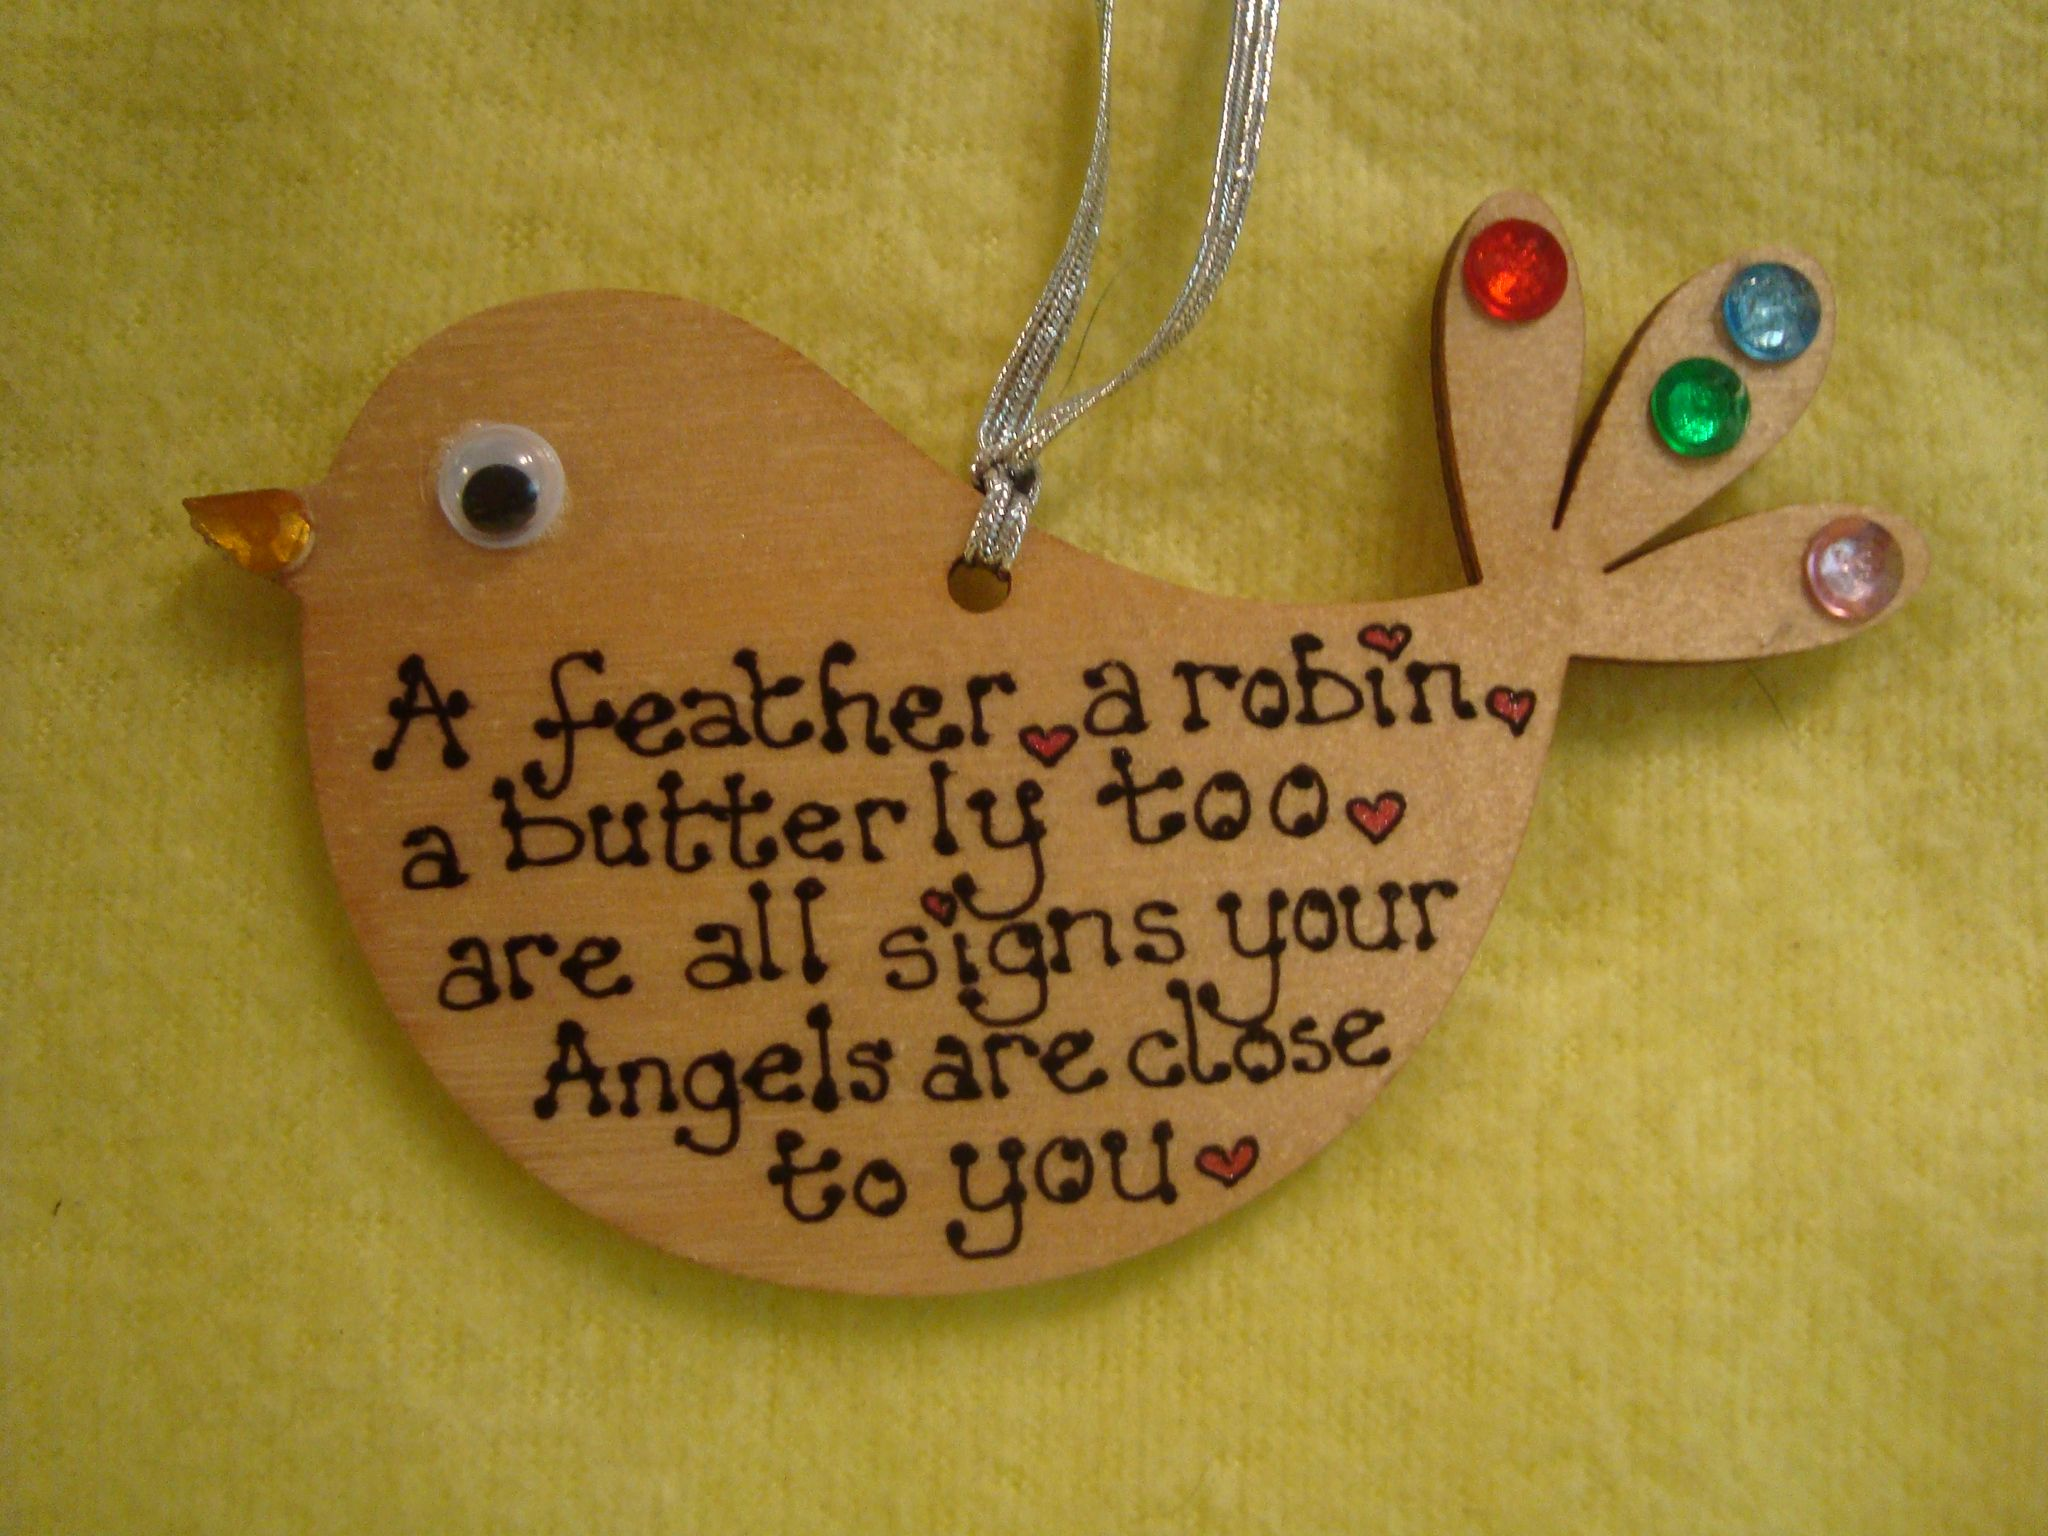 Wooden Christmas Tree Hanger Decoration A Feather A Robin A Butterfly Too Are All Signs Your Angels Are Close To You